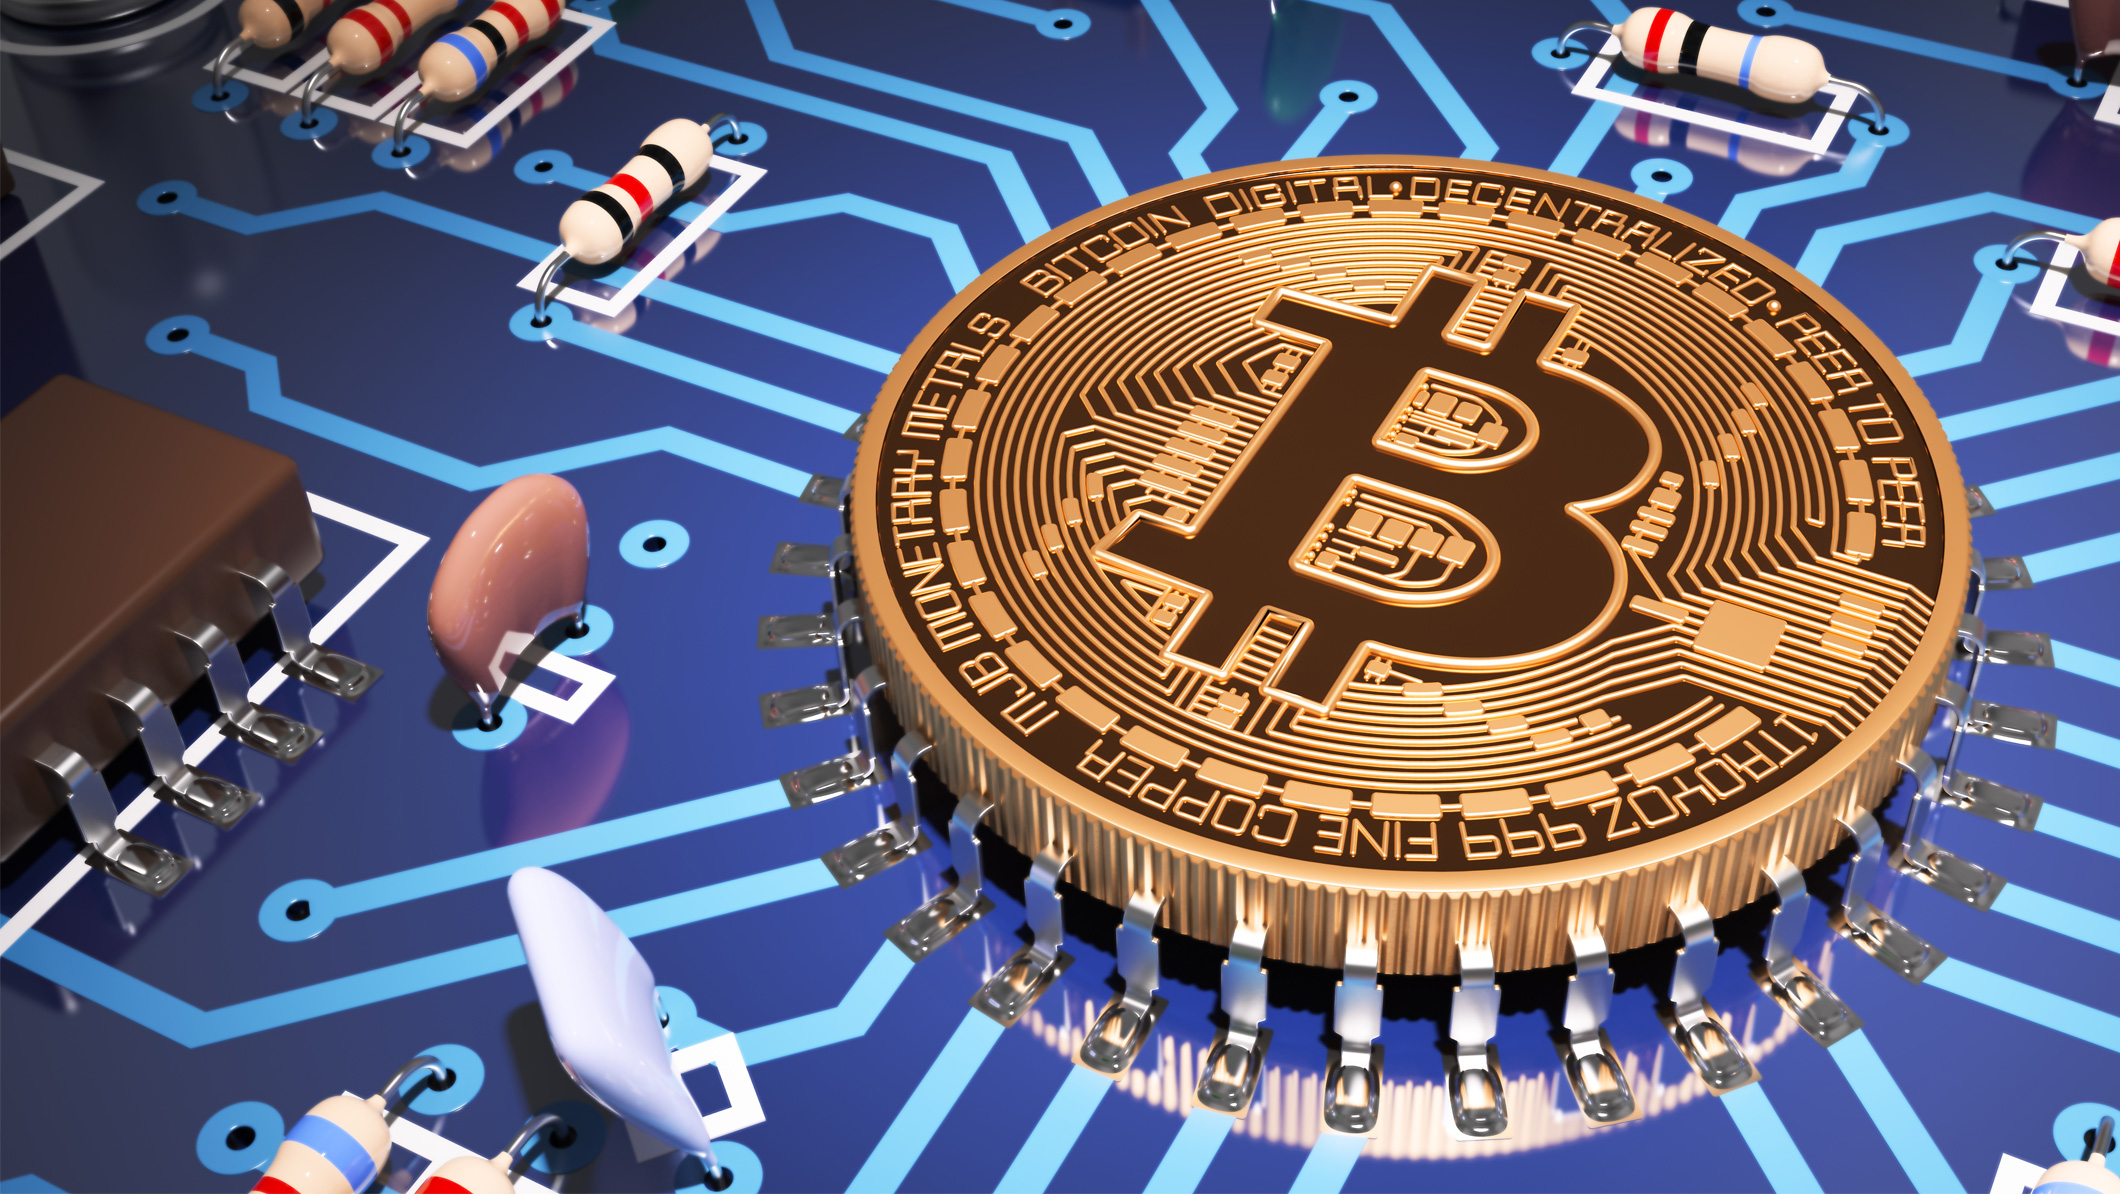 bitcoin risks and opportunity bitcoin Bitcoin ponzi scheme in july 2013, the sec charged an individual for an alleged bitcoin-related ponzi scheme in sec vshaversthe defendant advertised a bitcoin investment opportunity in an online bitcoin forum, promising investors up to 7% interest per week and that the invested funds would be used for bitcoin activities.